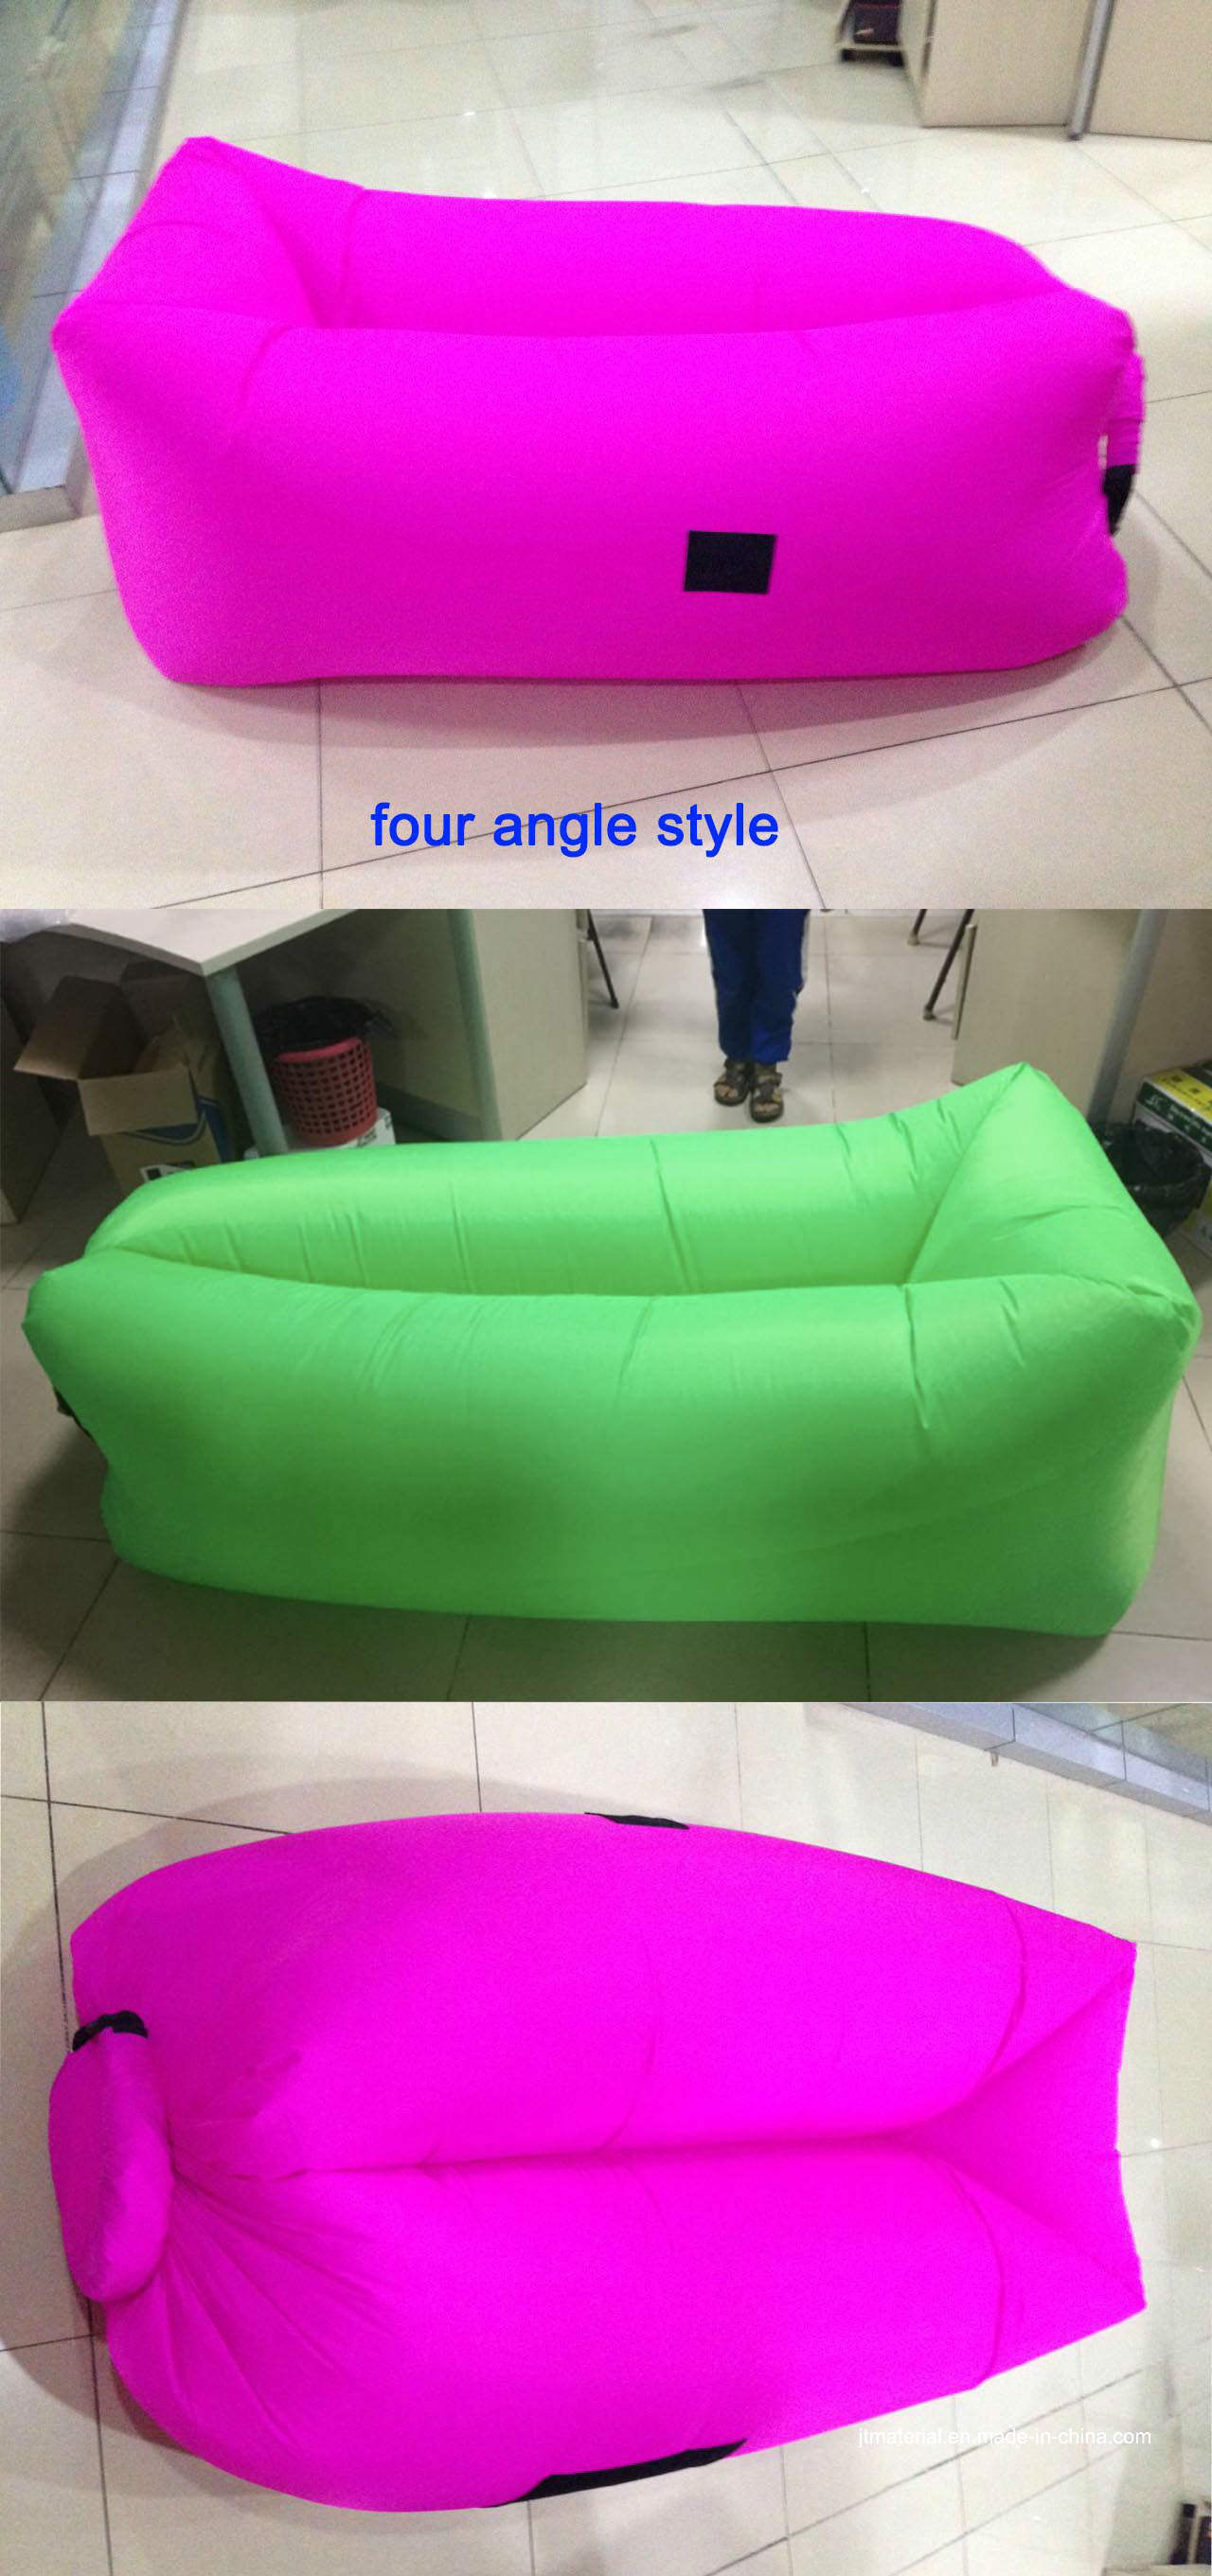 Inflatable Sofa Lamzac Air Bag Kaisr Lazy Bag Laybag Air Bag Lamzac Lazy Bag Laybag Inflatable Sofa Lazy Bag Lamzac